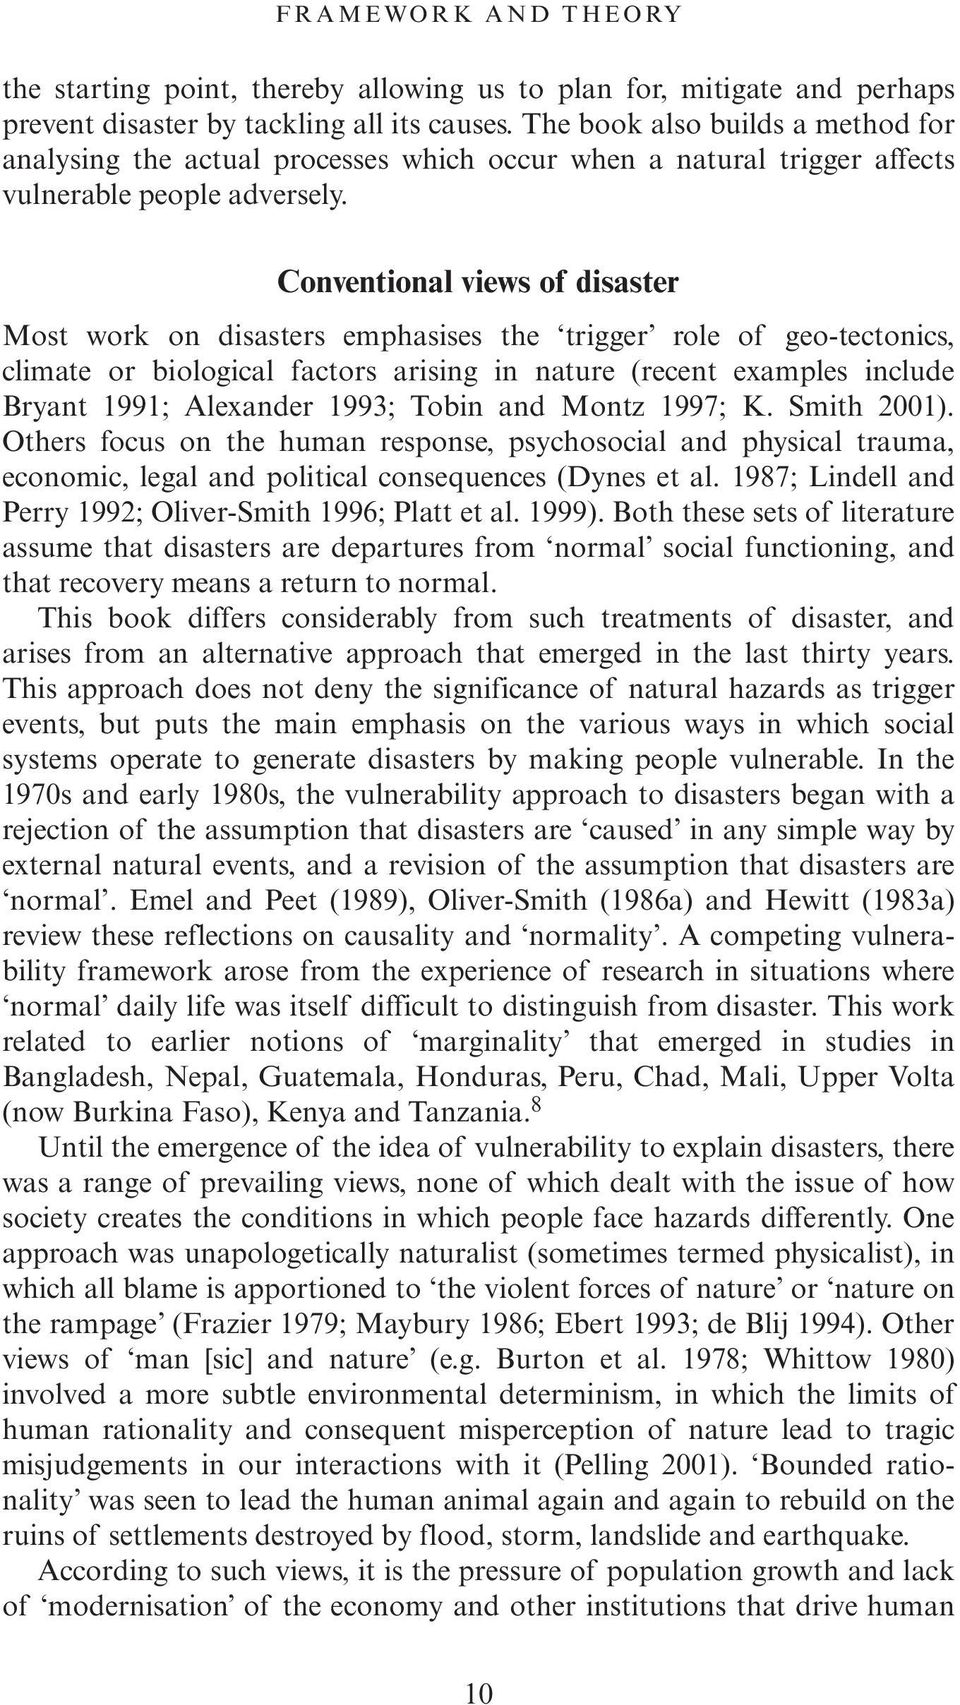 Conventional views of disaster Most work on disasters emphasises the trigger role of geo-tectonics, climate or biological factors arising in nature (recent examples include Bryant 1991; Alexander